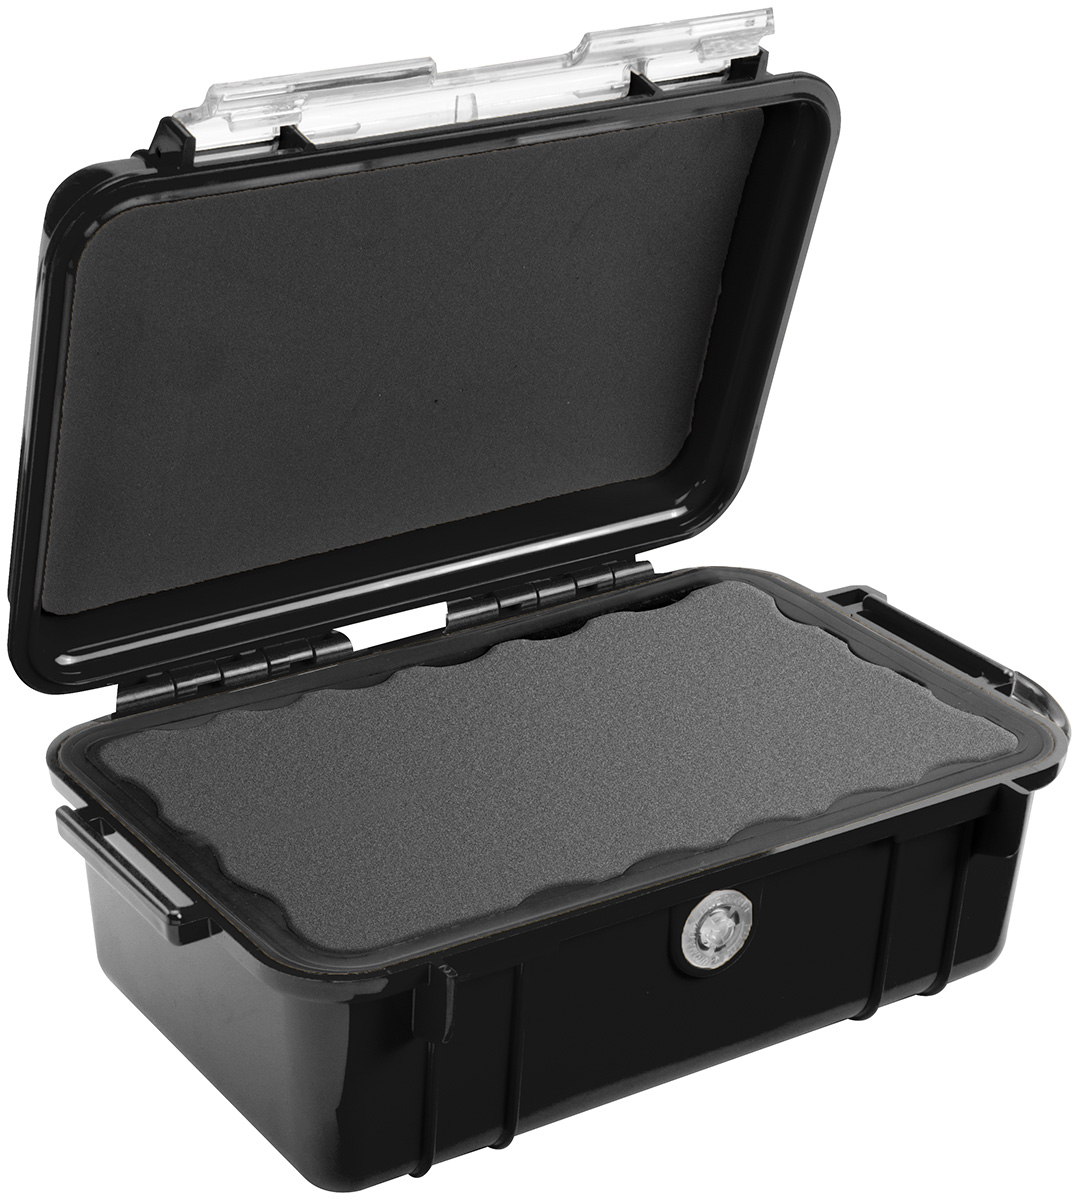 pelican 1050 watertight electronics enclosure box